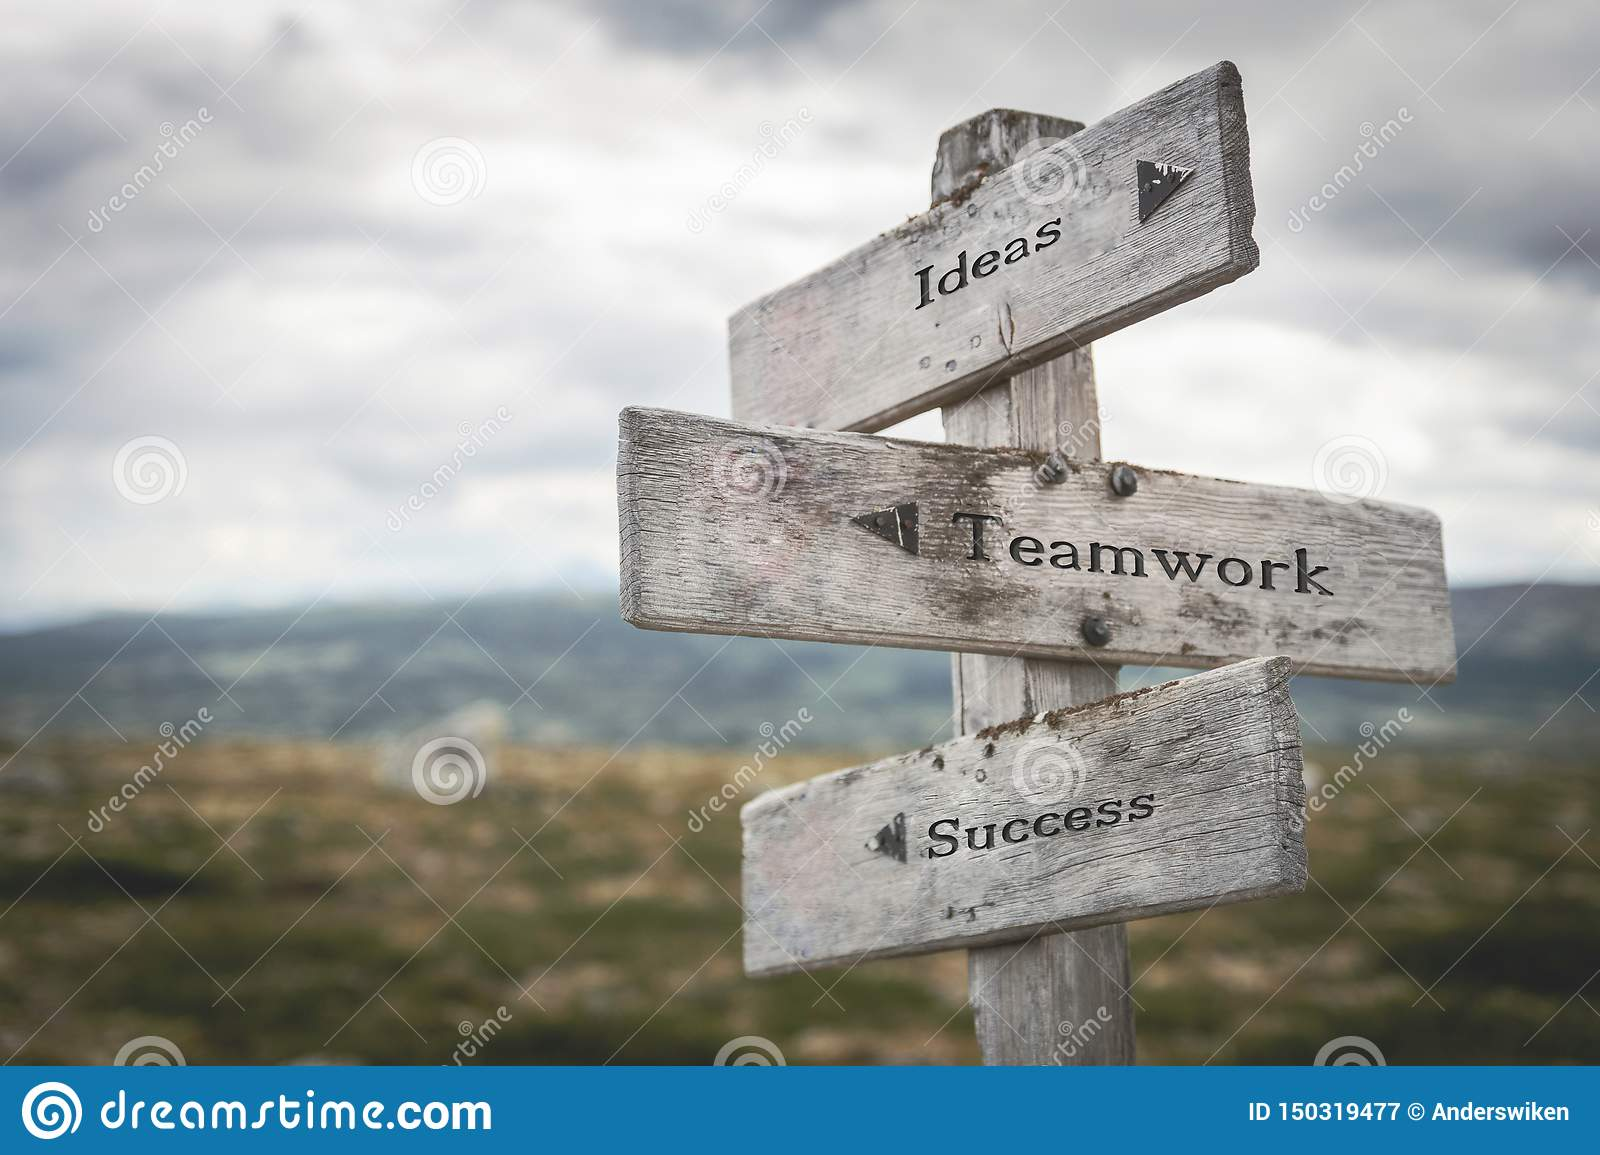 Ideas, teamwork and success signpost outdoors in nature.